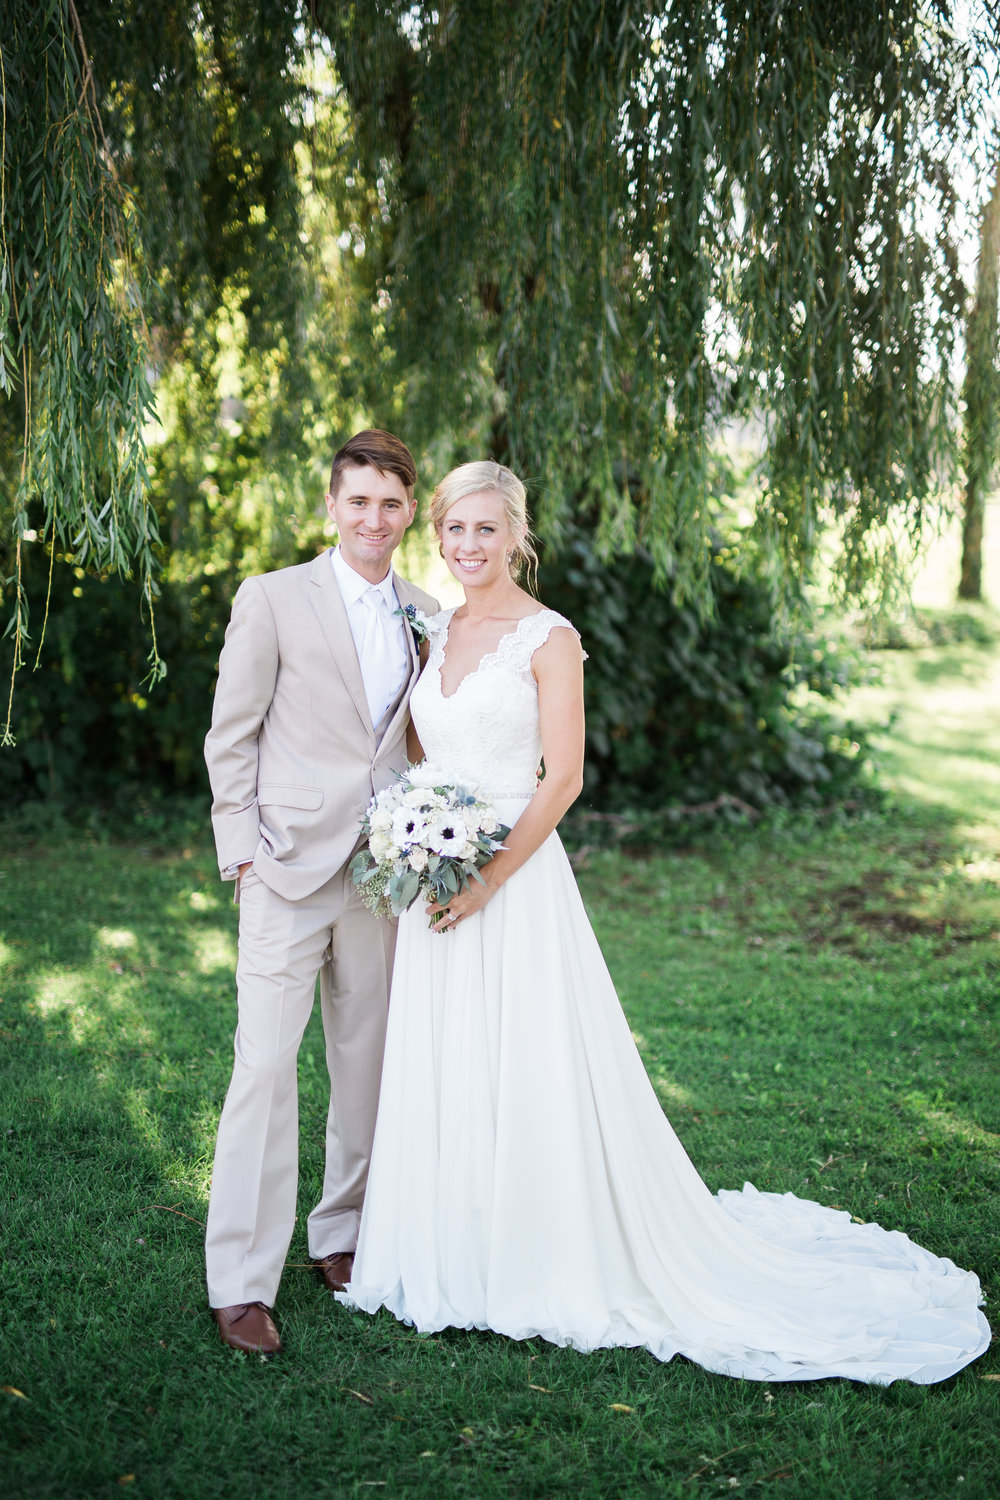 Claire & Robert | Traverse City, MI